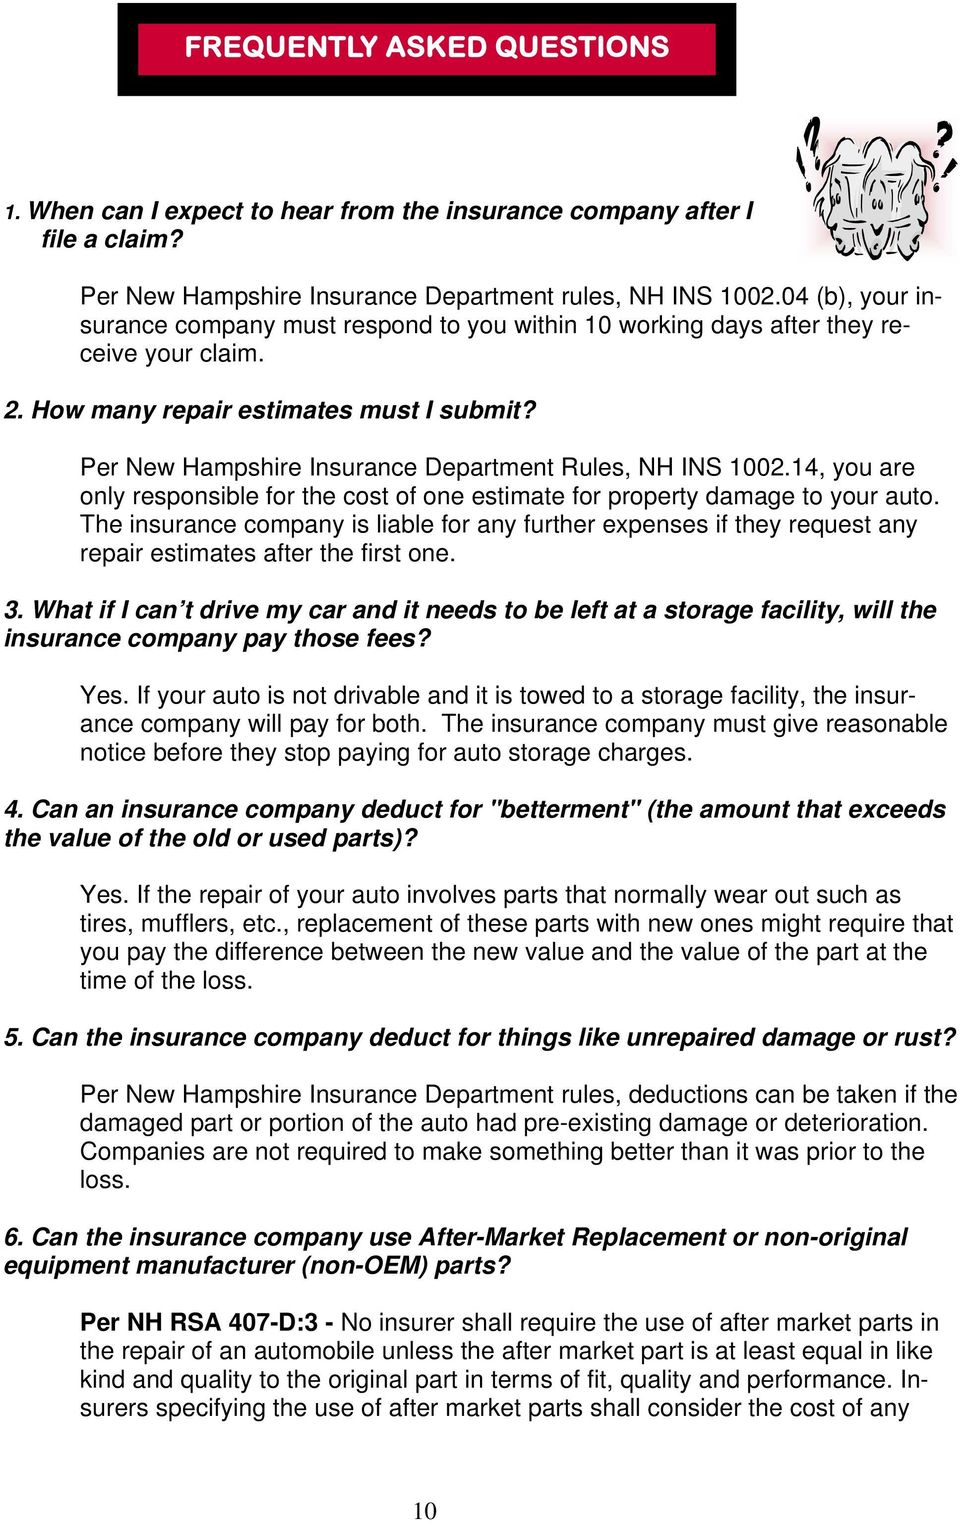 Per New Hampshire Insurance Department Rules, NH INS 1002.14, you are only responsible for the cost of one estimate for property damage to your auto.